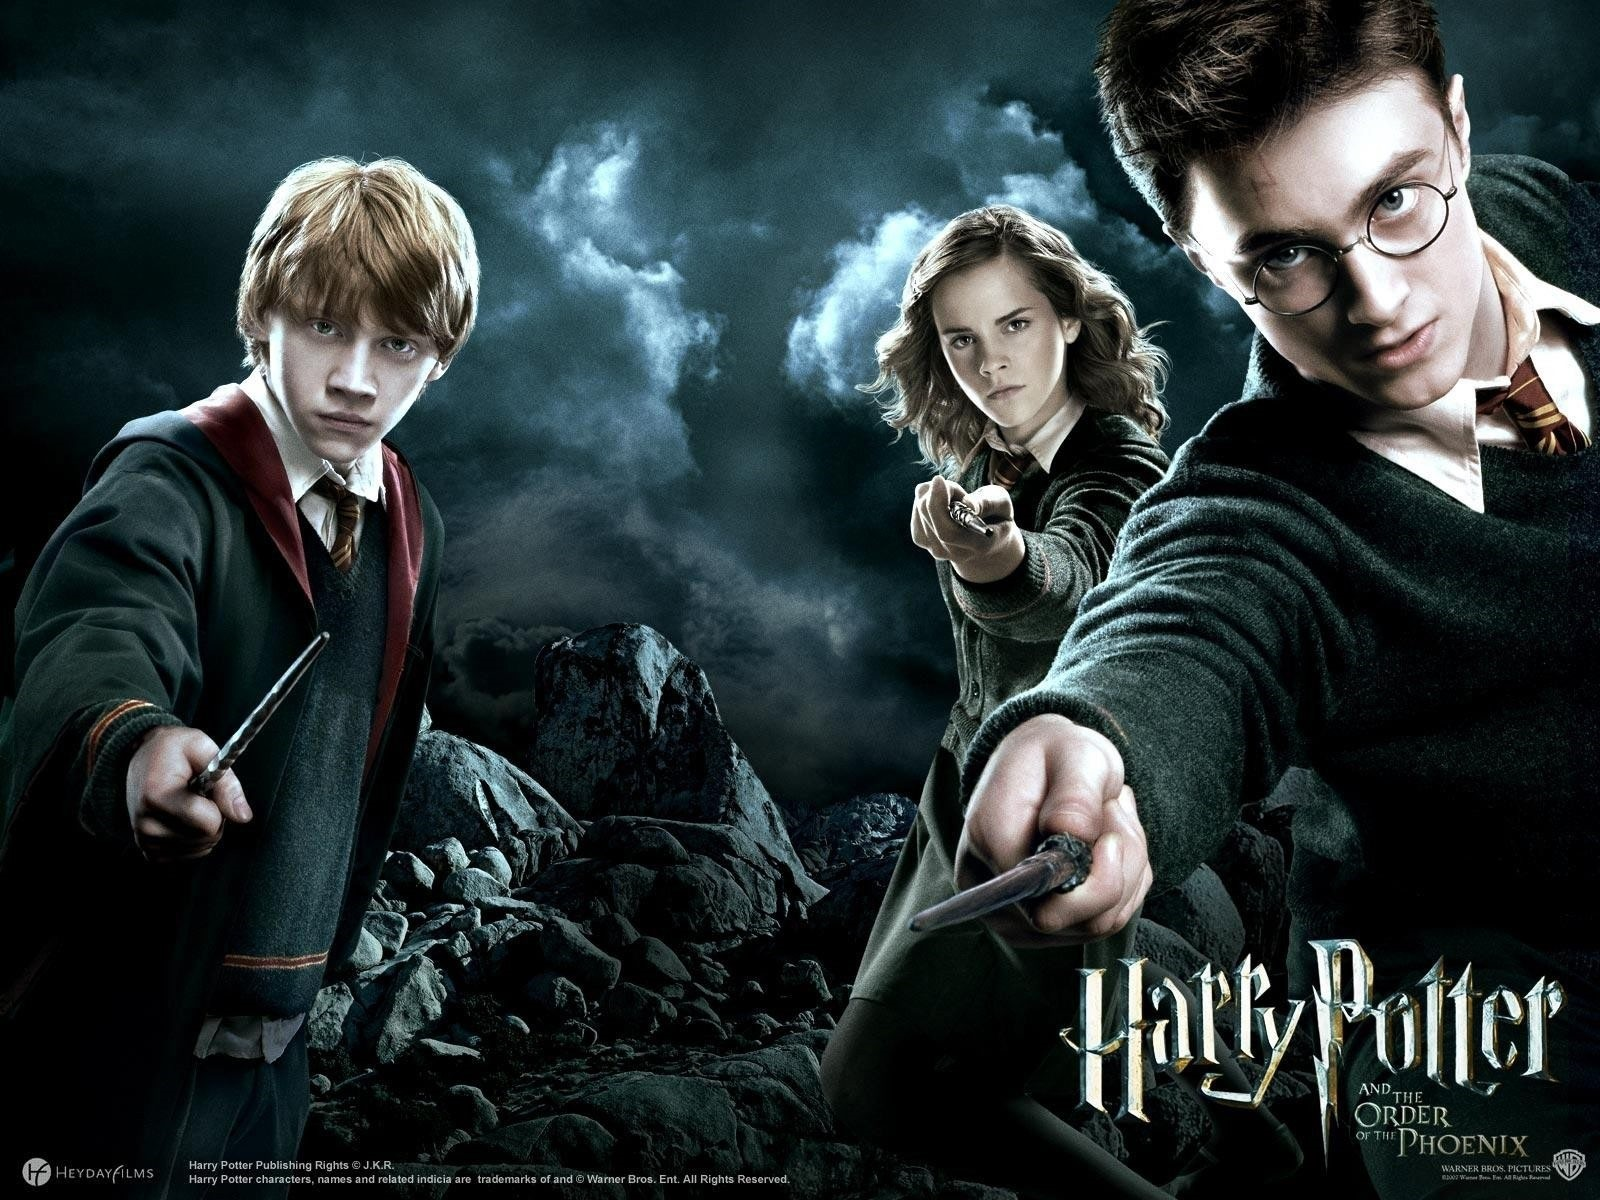 Harry Potter and the Order of the Phoenix film promo poster. (FILE Photo)